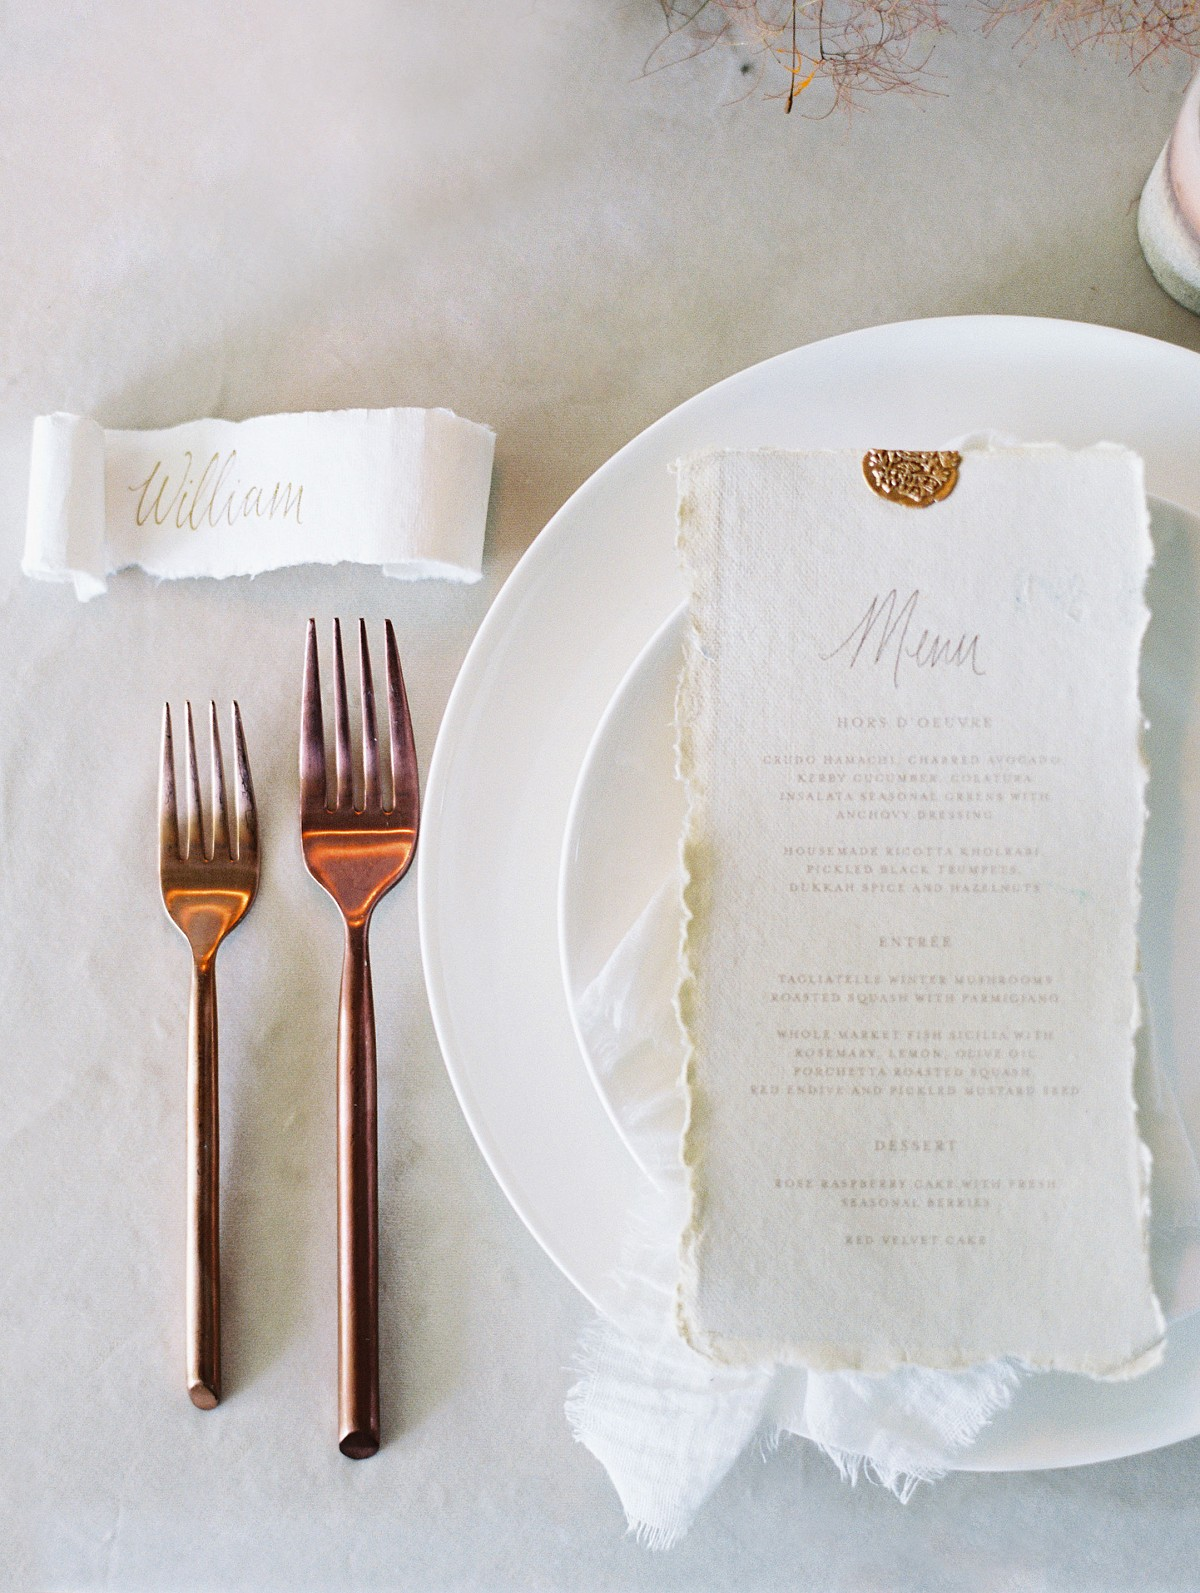 menu with calligraphy and deckled edging